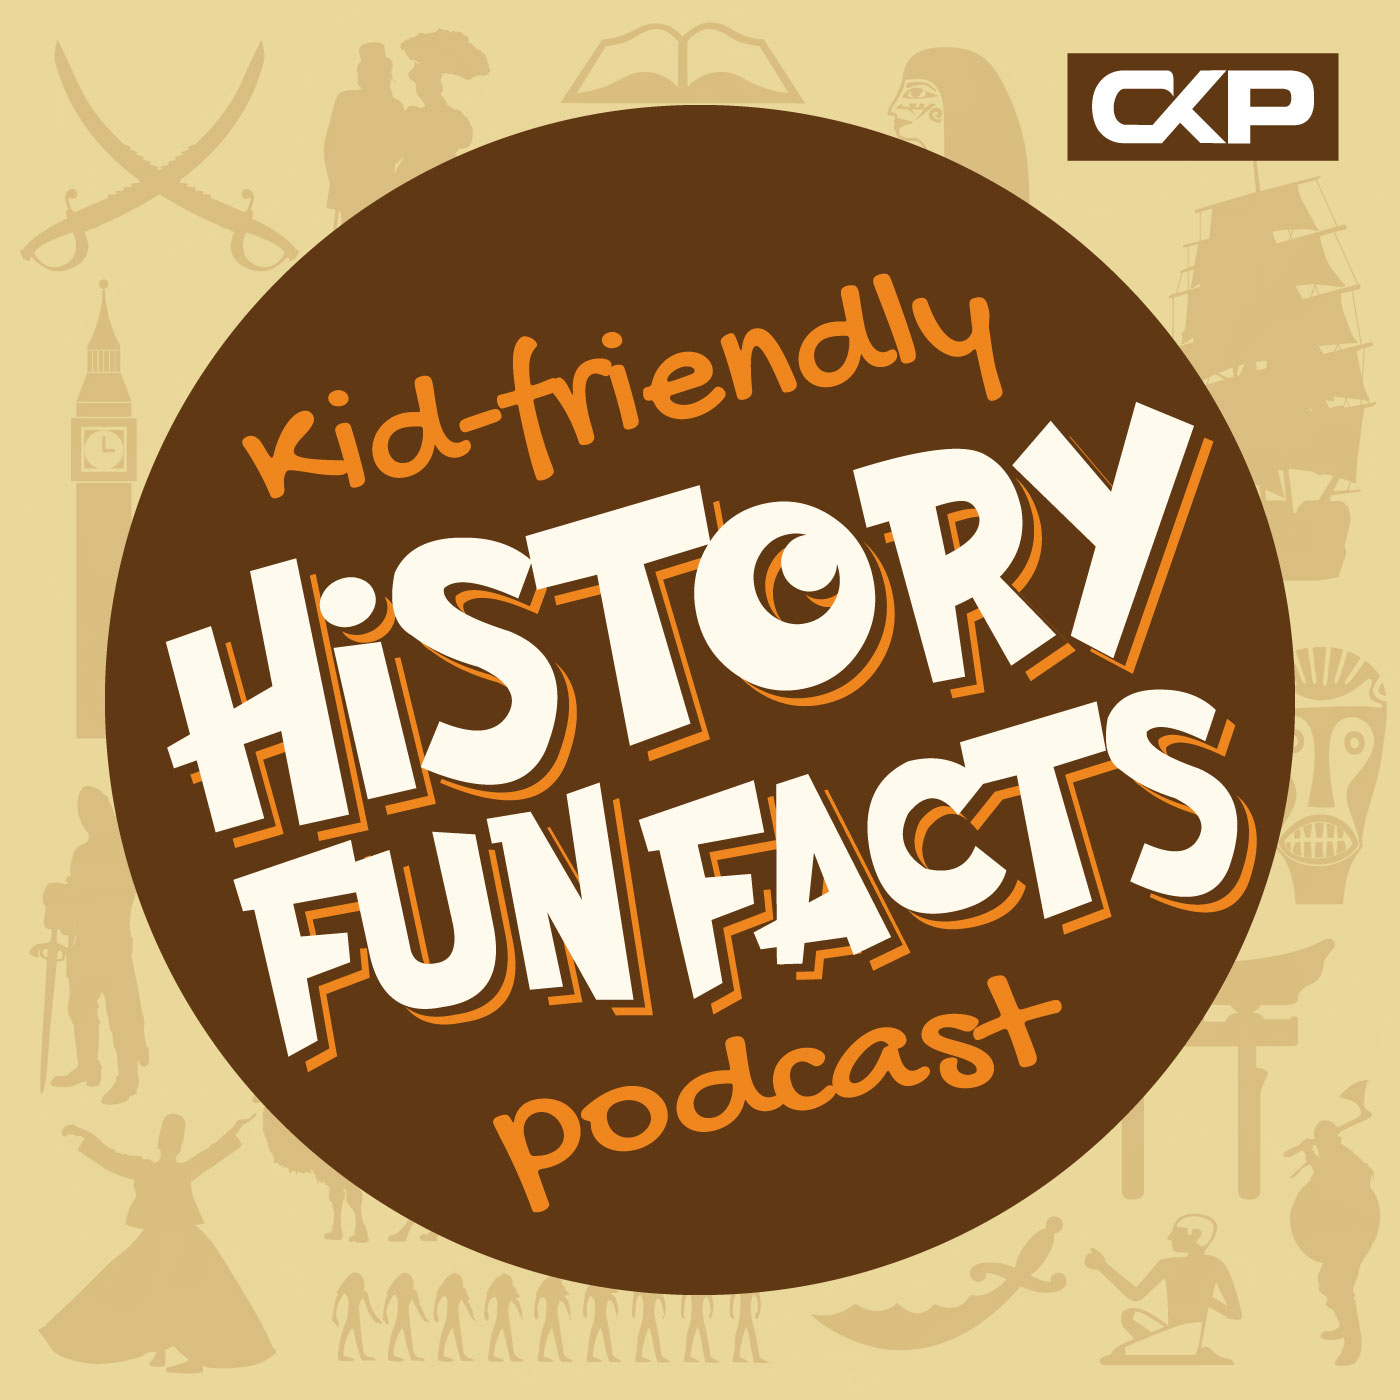 buy cheap 1350c 0f8c6 History Fun Fact of the Day - Episode 28 - Michael Jordan. from Kid  Friendly History Fun Facts Podcast